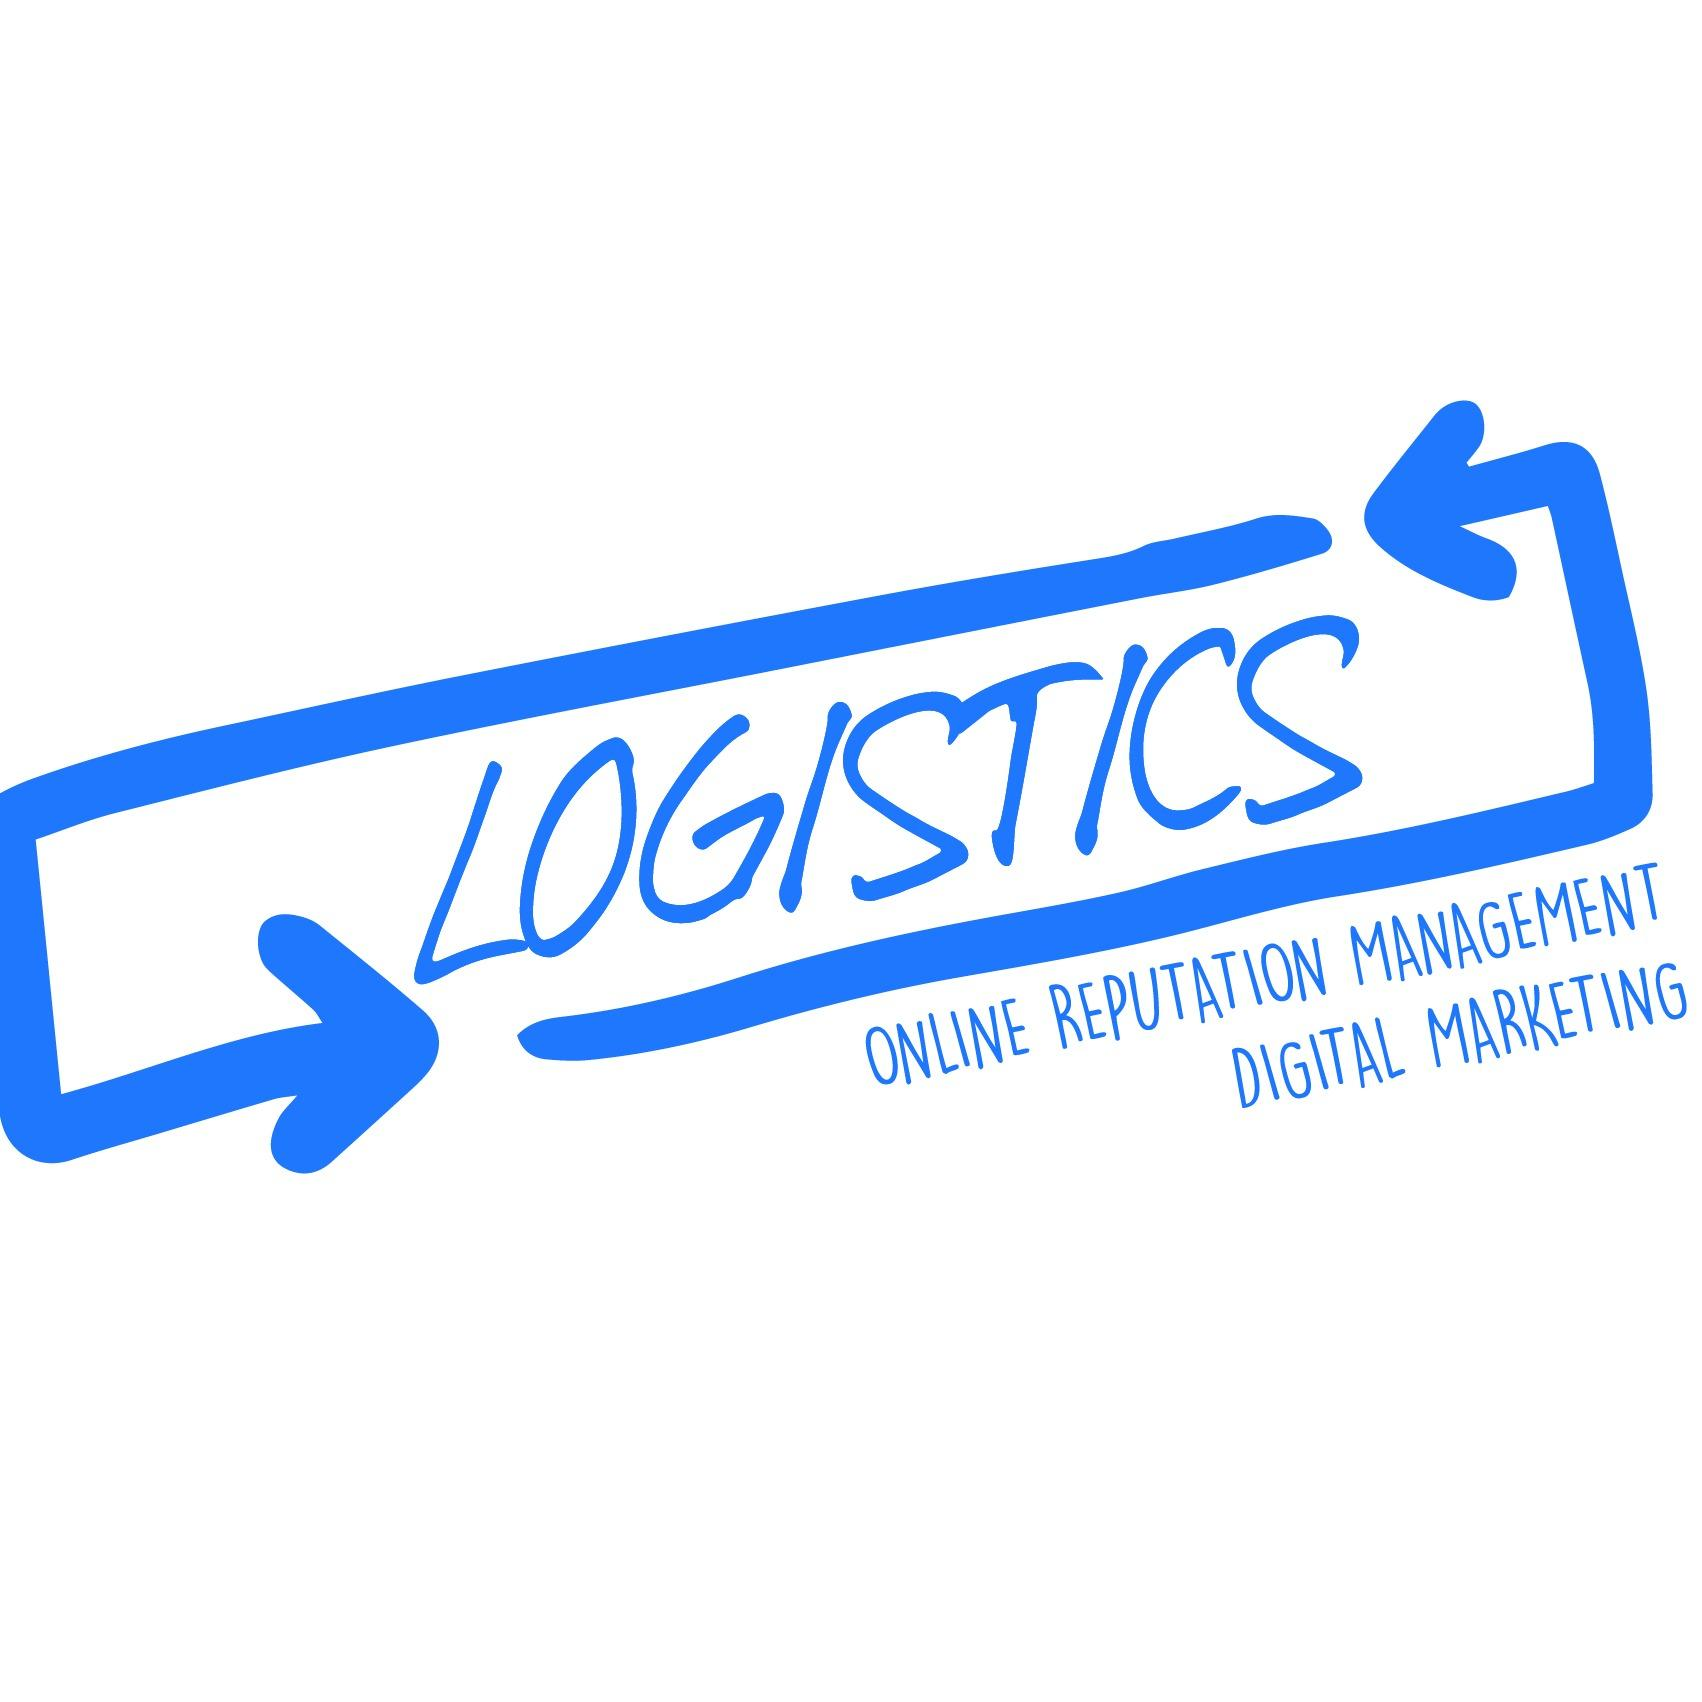 marketing and logistics Logistics marketing advisors provides complete marketing strategy and execution services for 3pls and other logistics businesses.